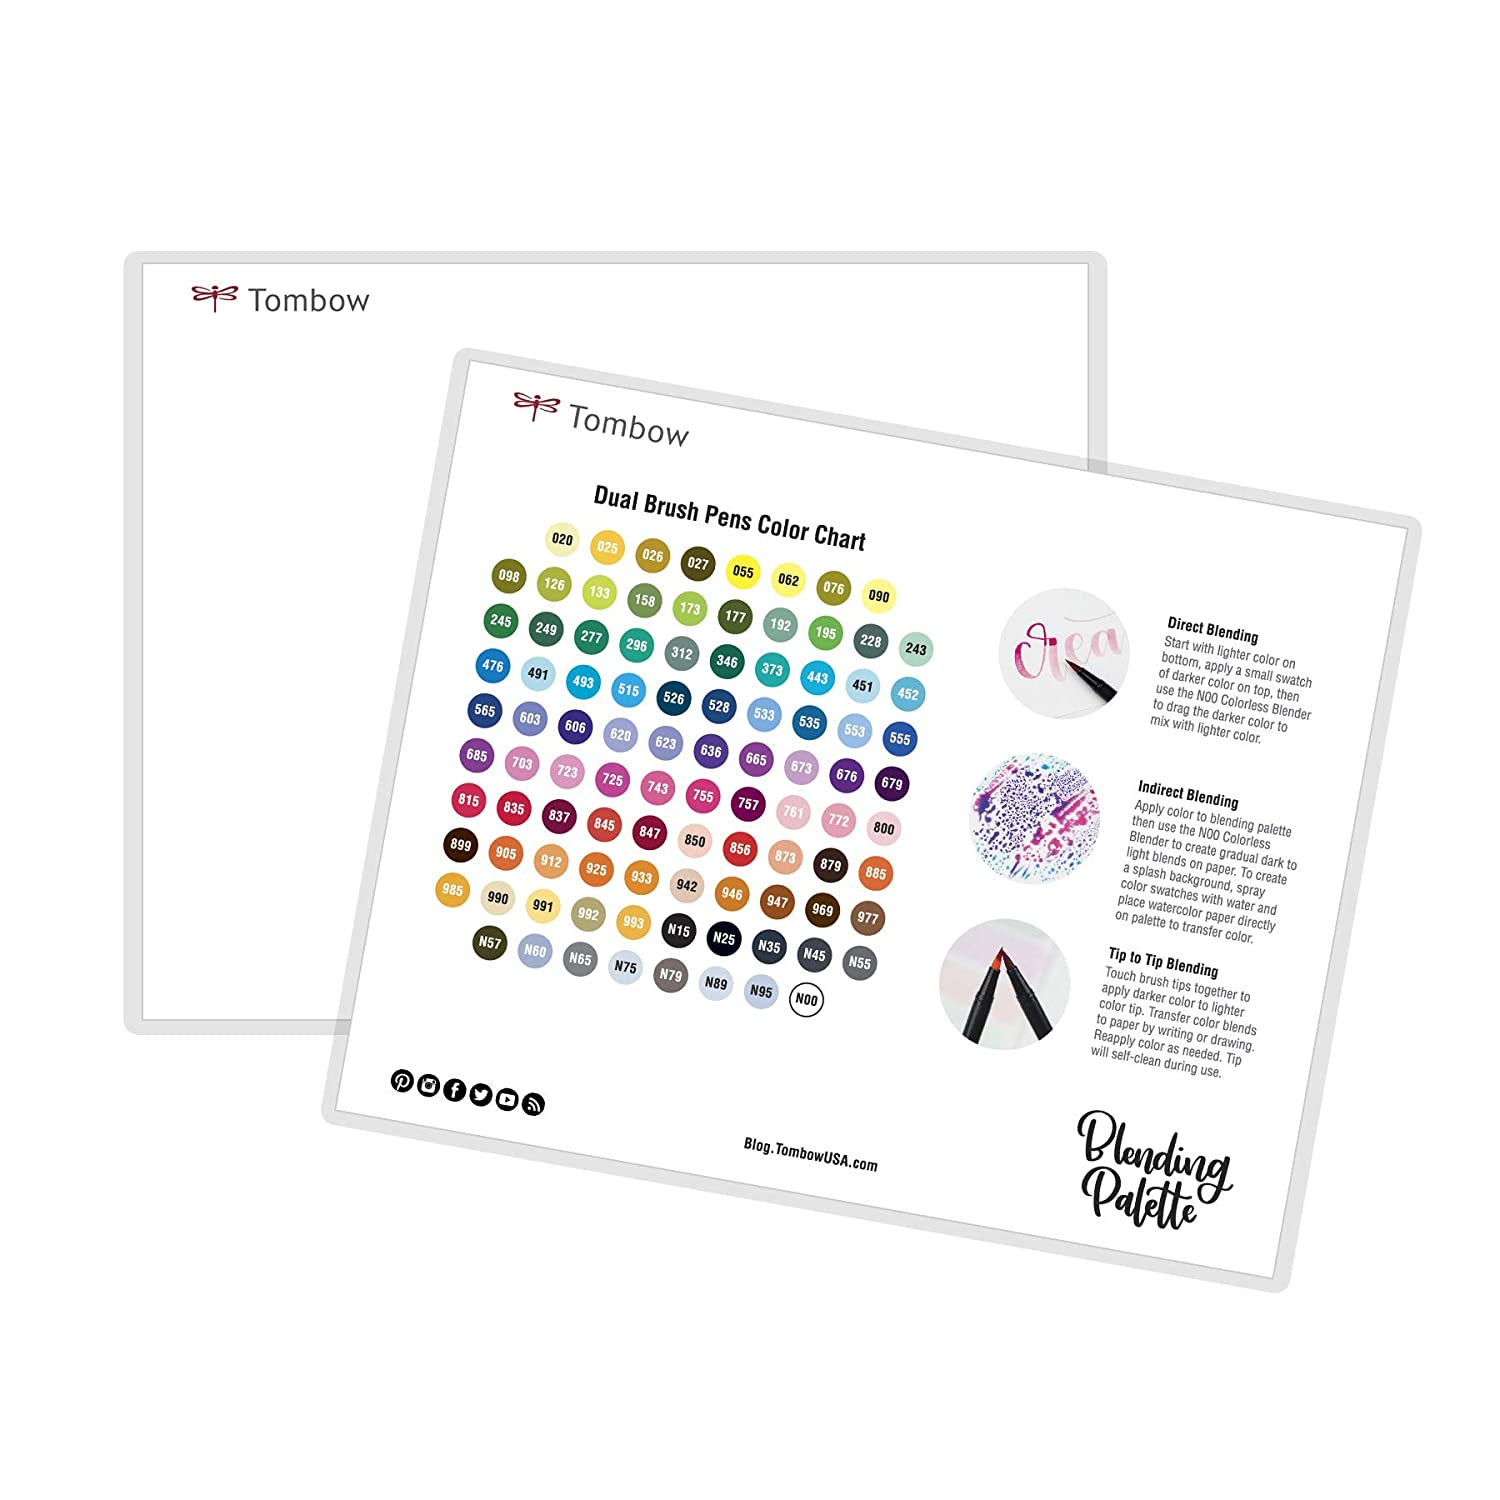 Tombow 56181 XL Blending Palette. Large Size Palette Allows Blending Colors with Ease